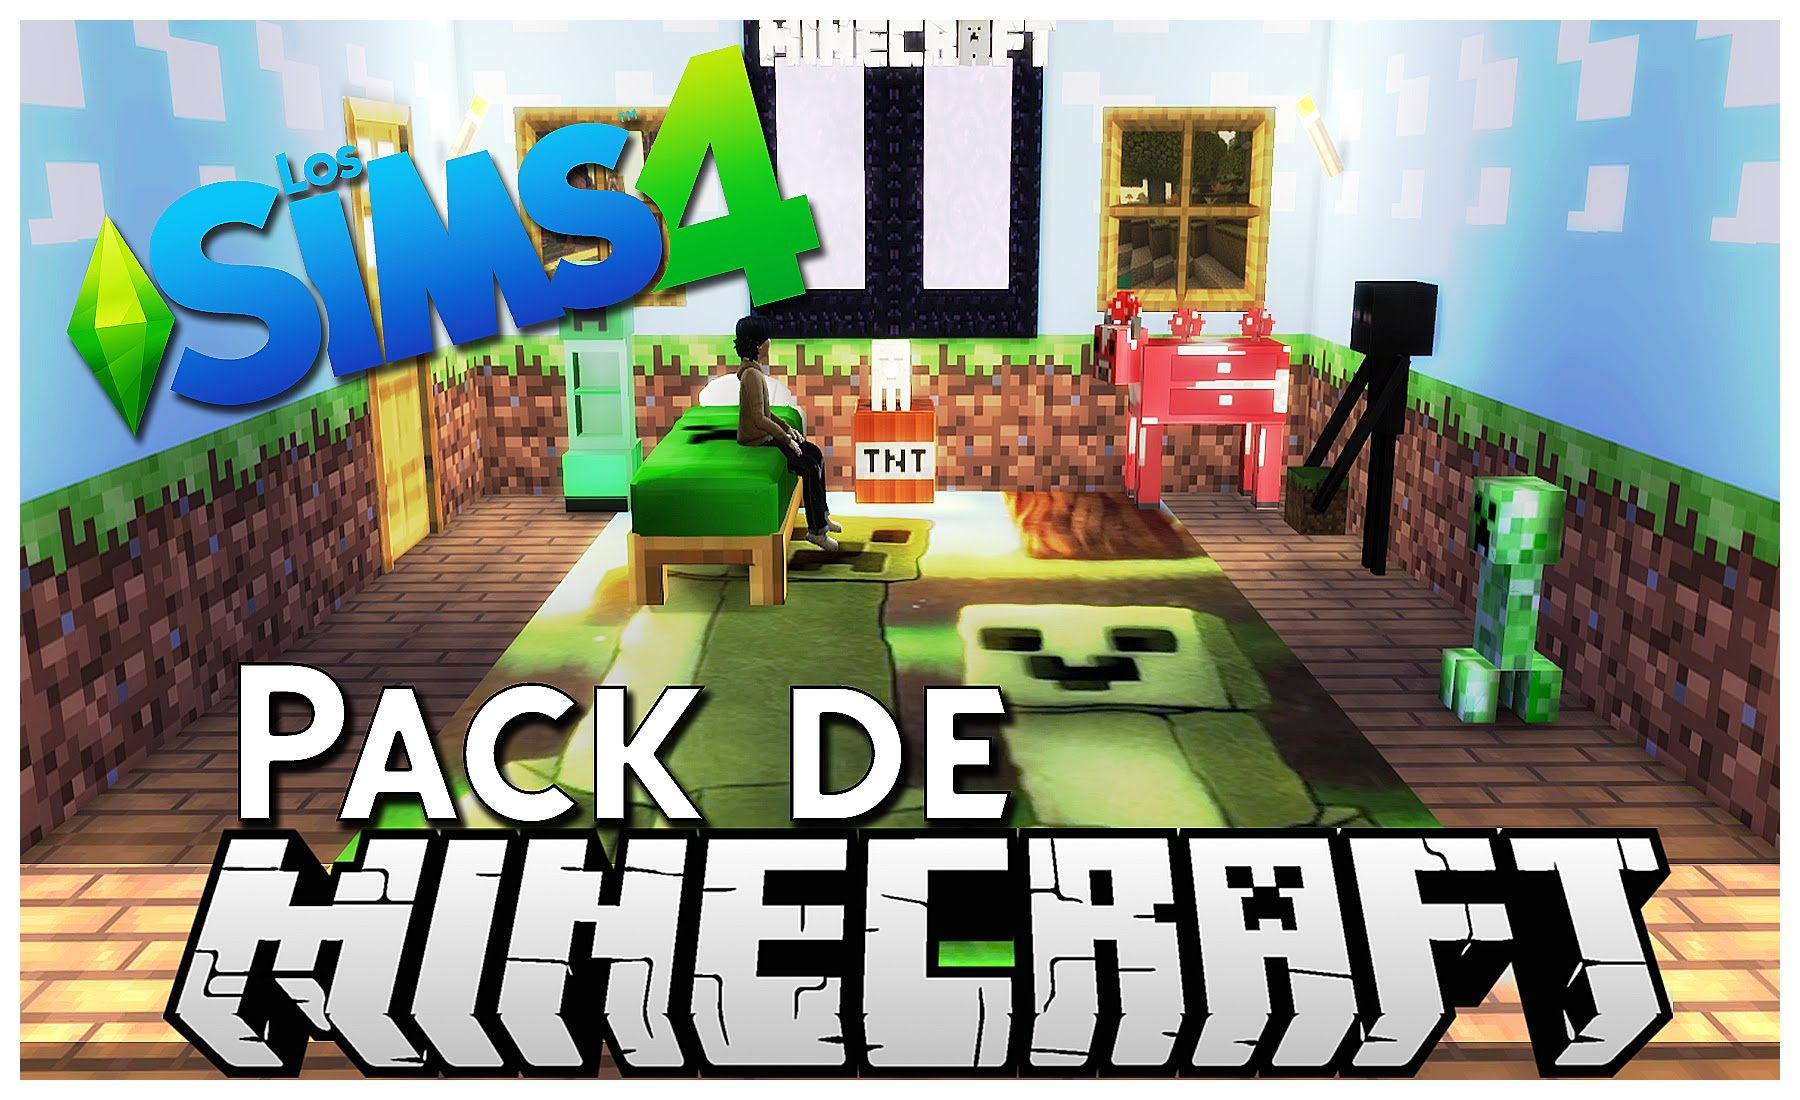 Los Sims 4 - Pack de Minecraft (DESCARGA) | Sims | Pinterest | Sims ...